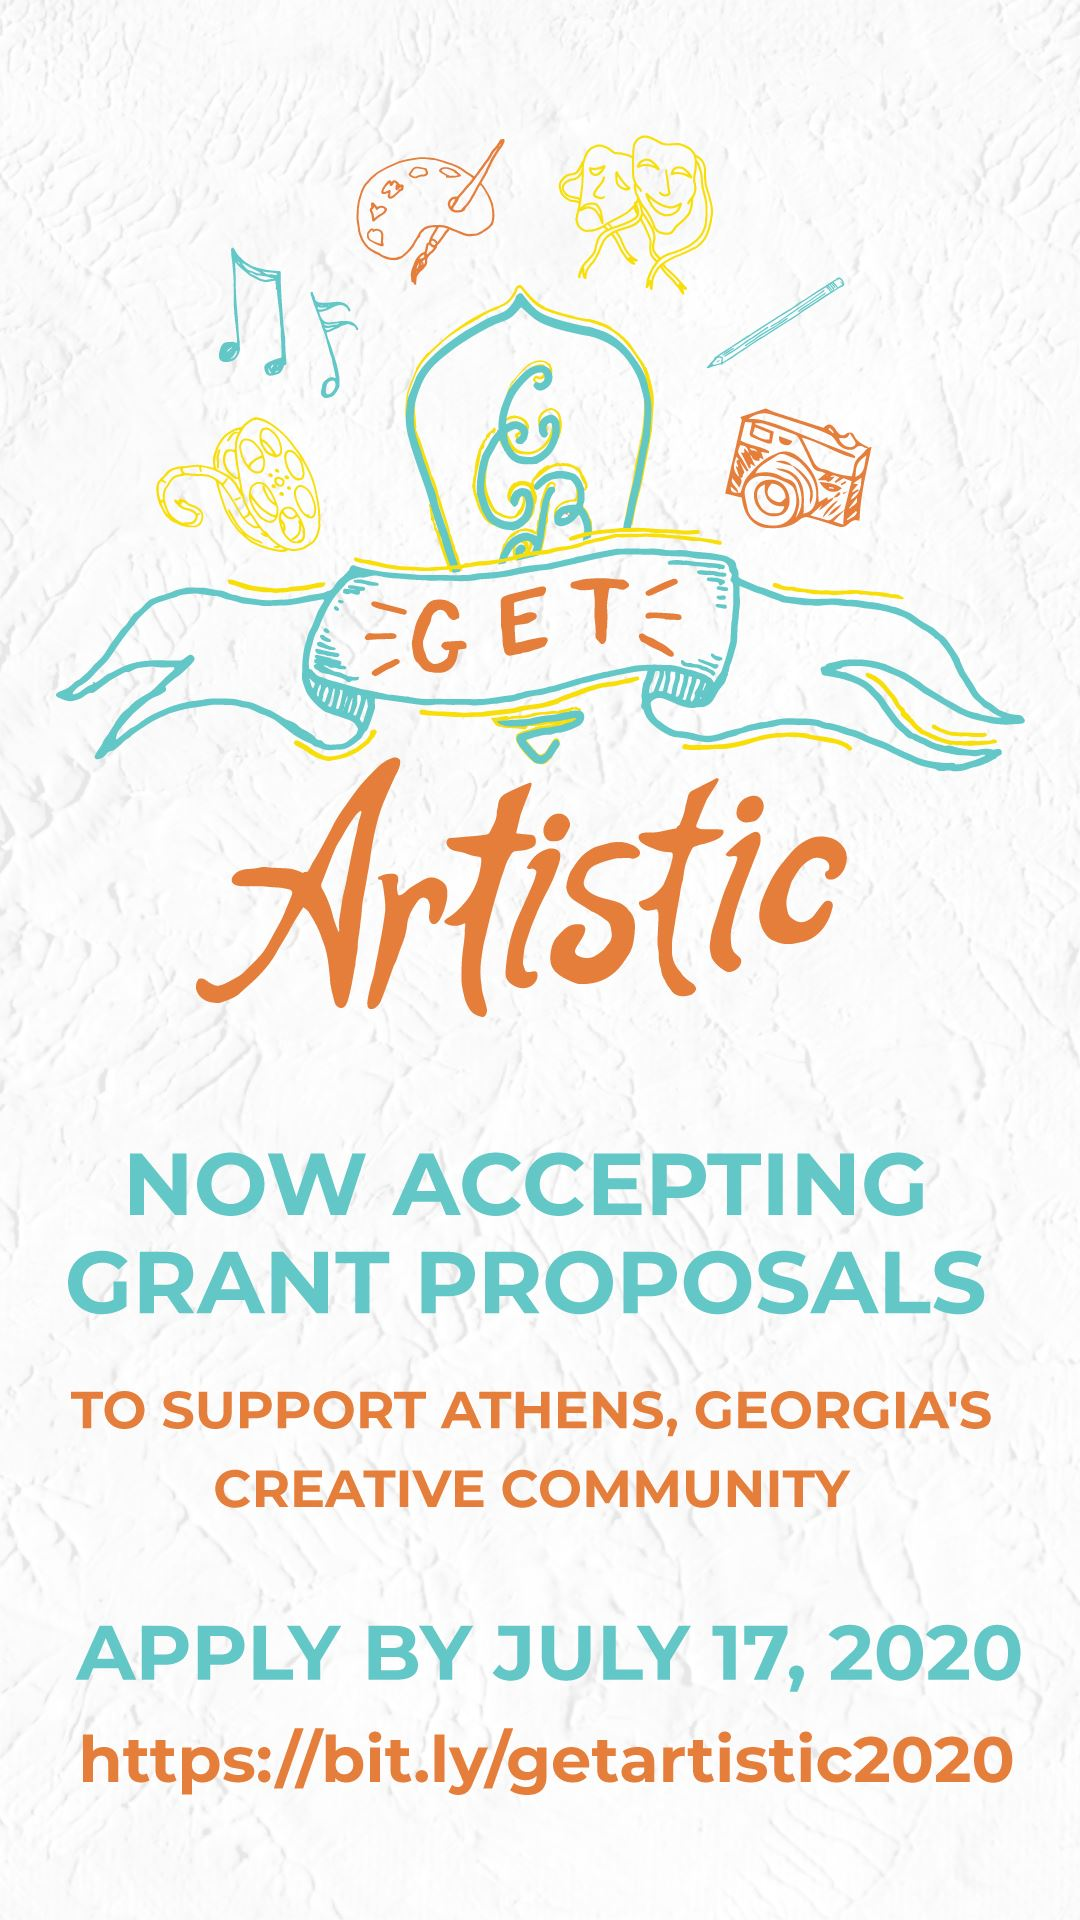 GetArtistic2020-grants-graphic